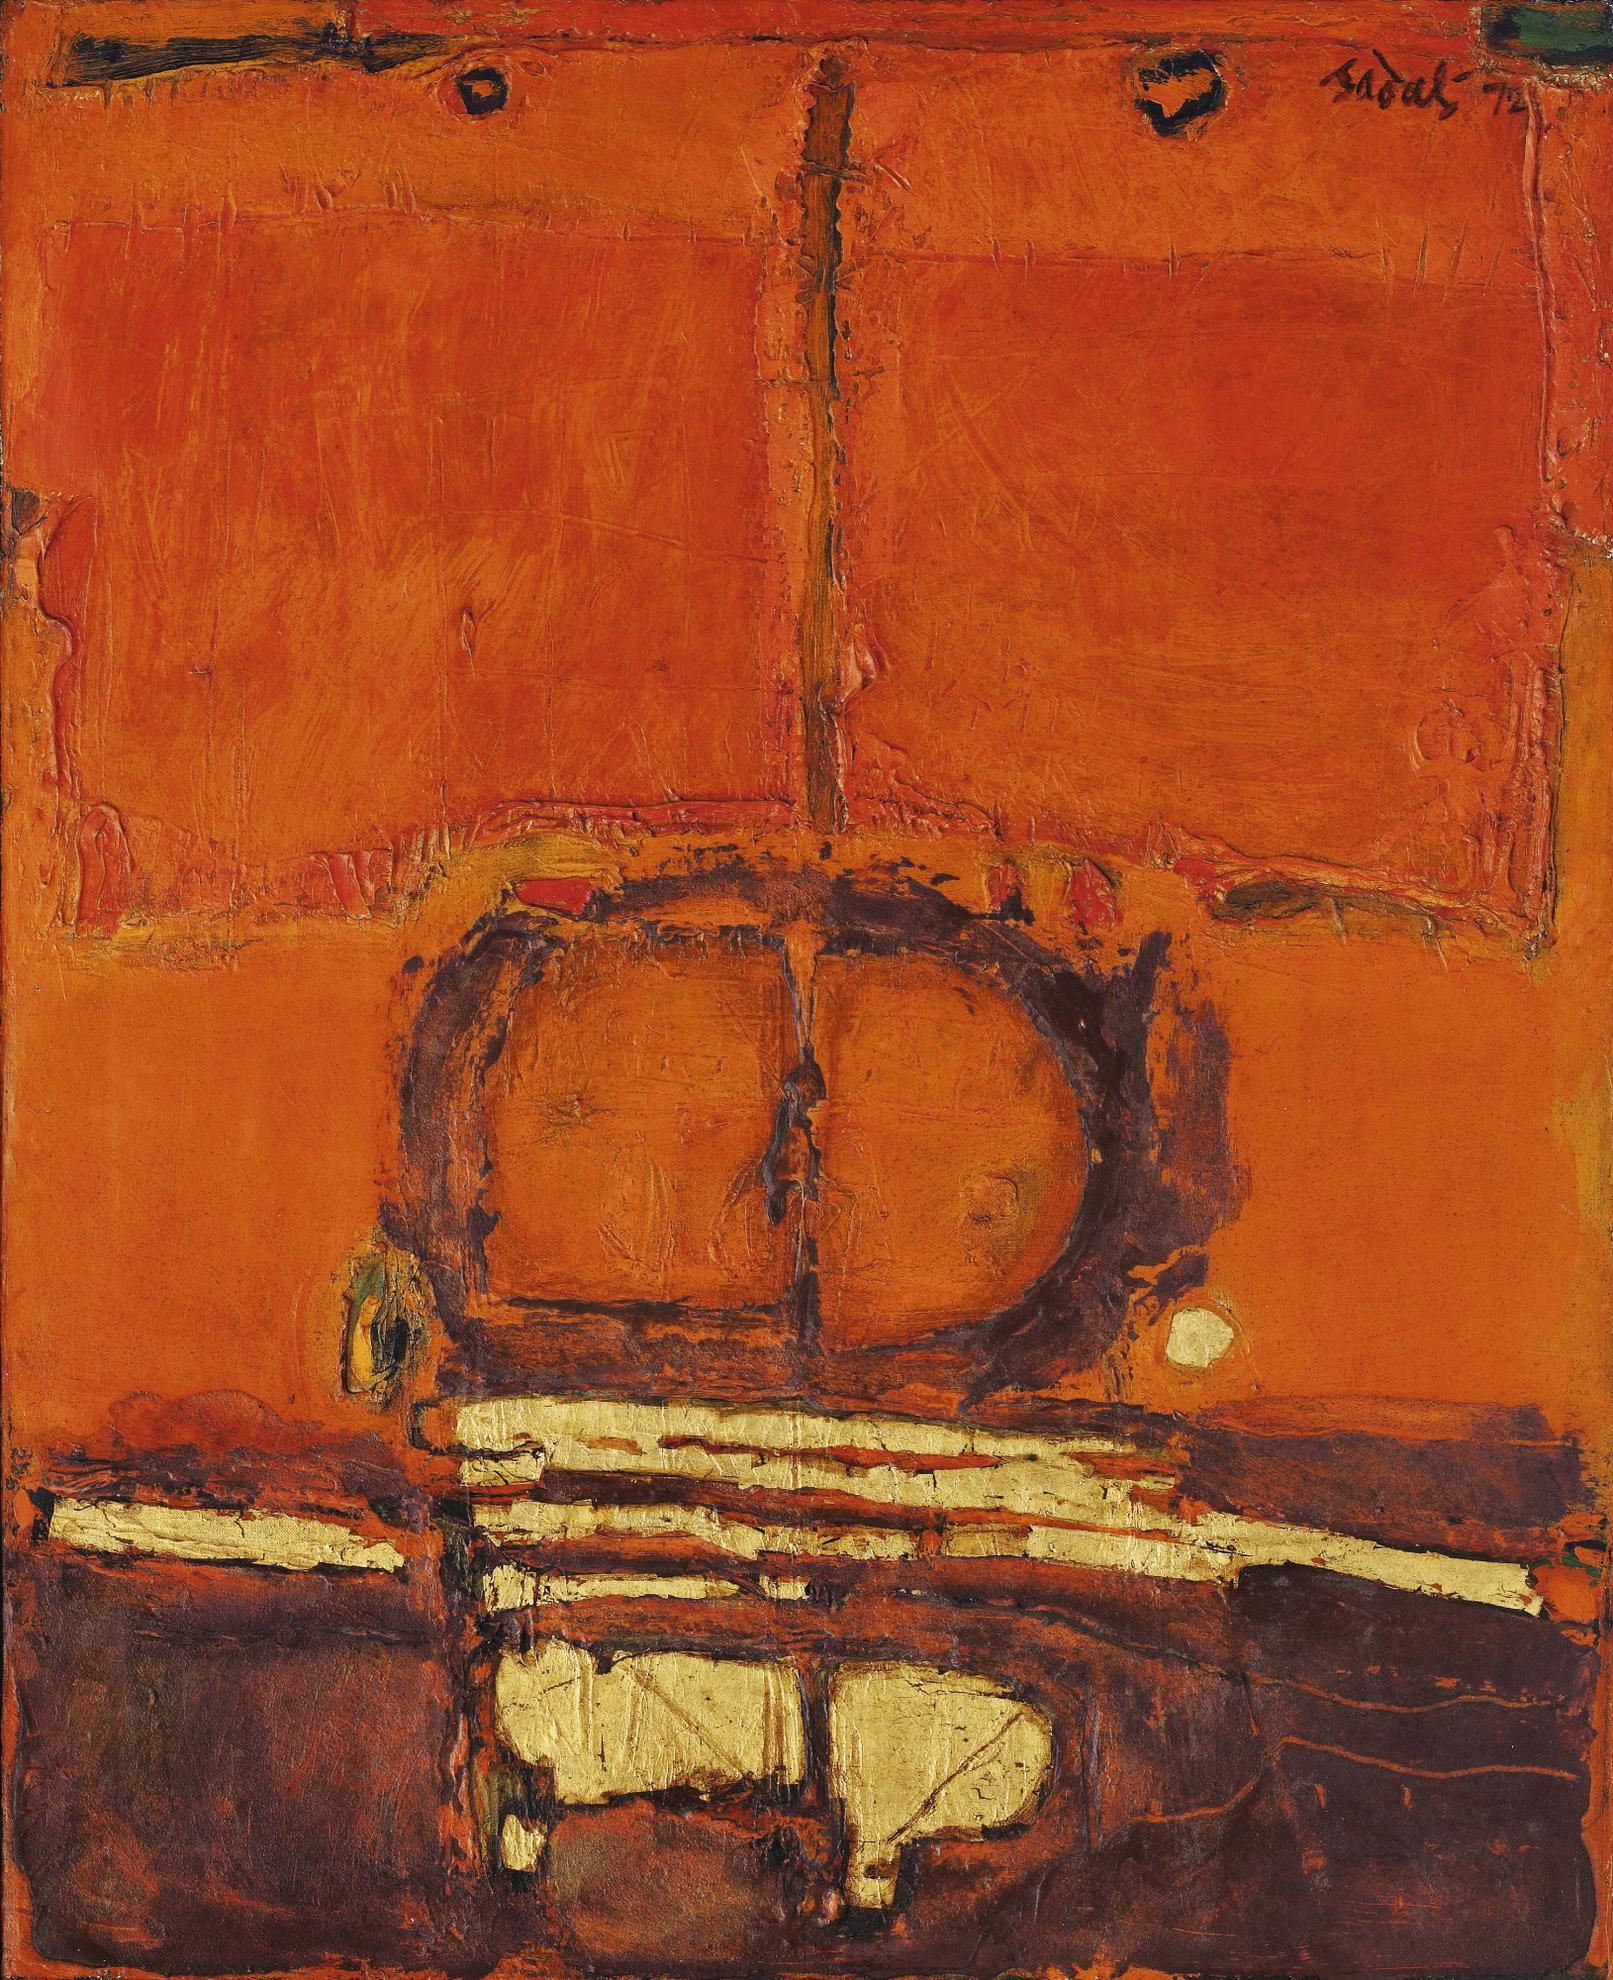 Ahmad Sadali-Untitled (Orange With Gold)-1972